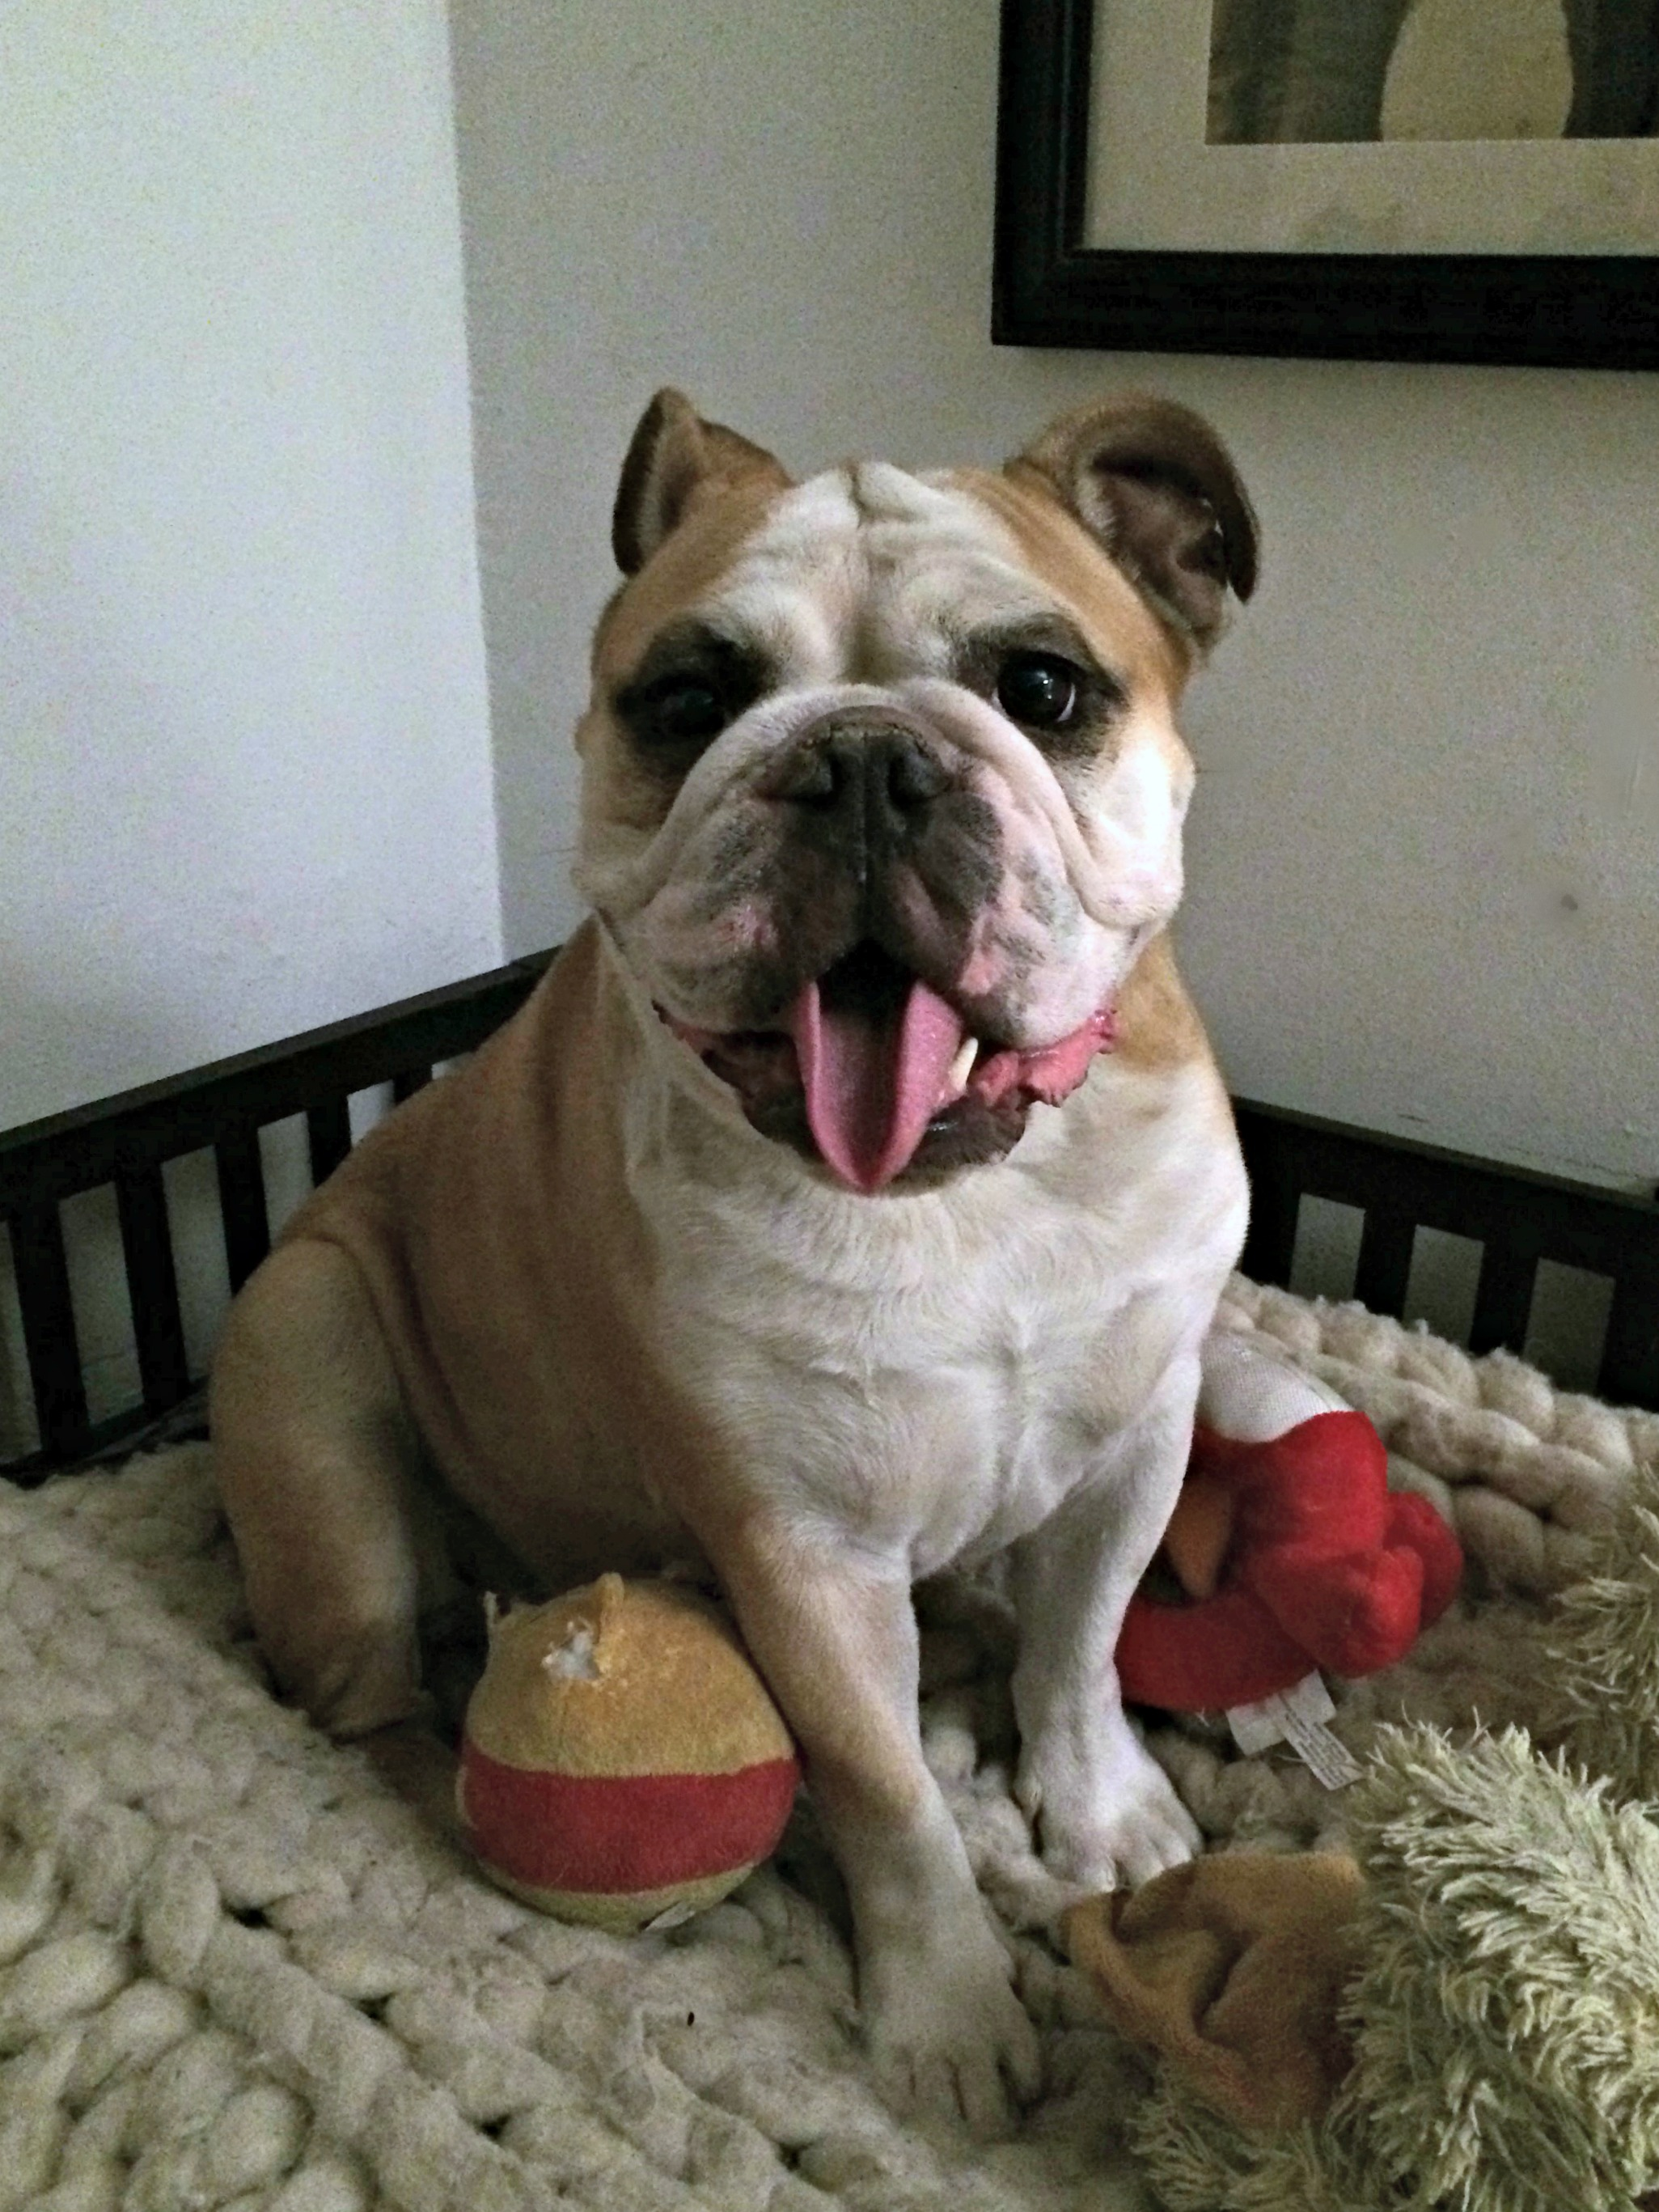 Meatball bulldog